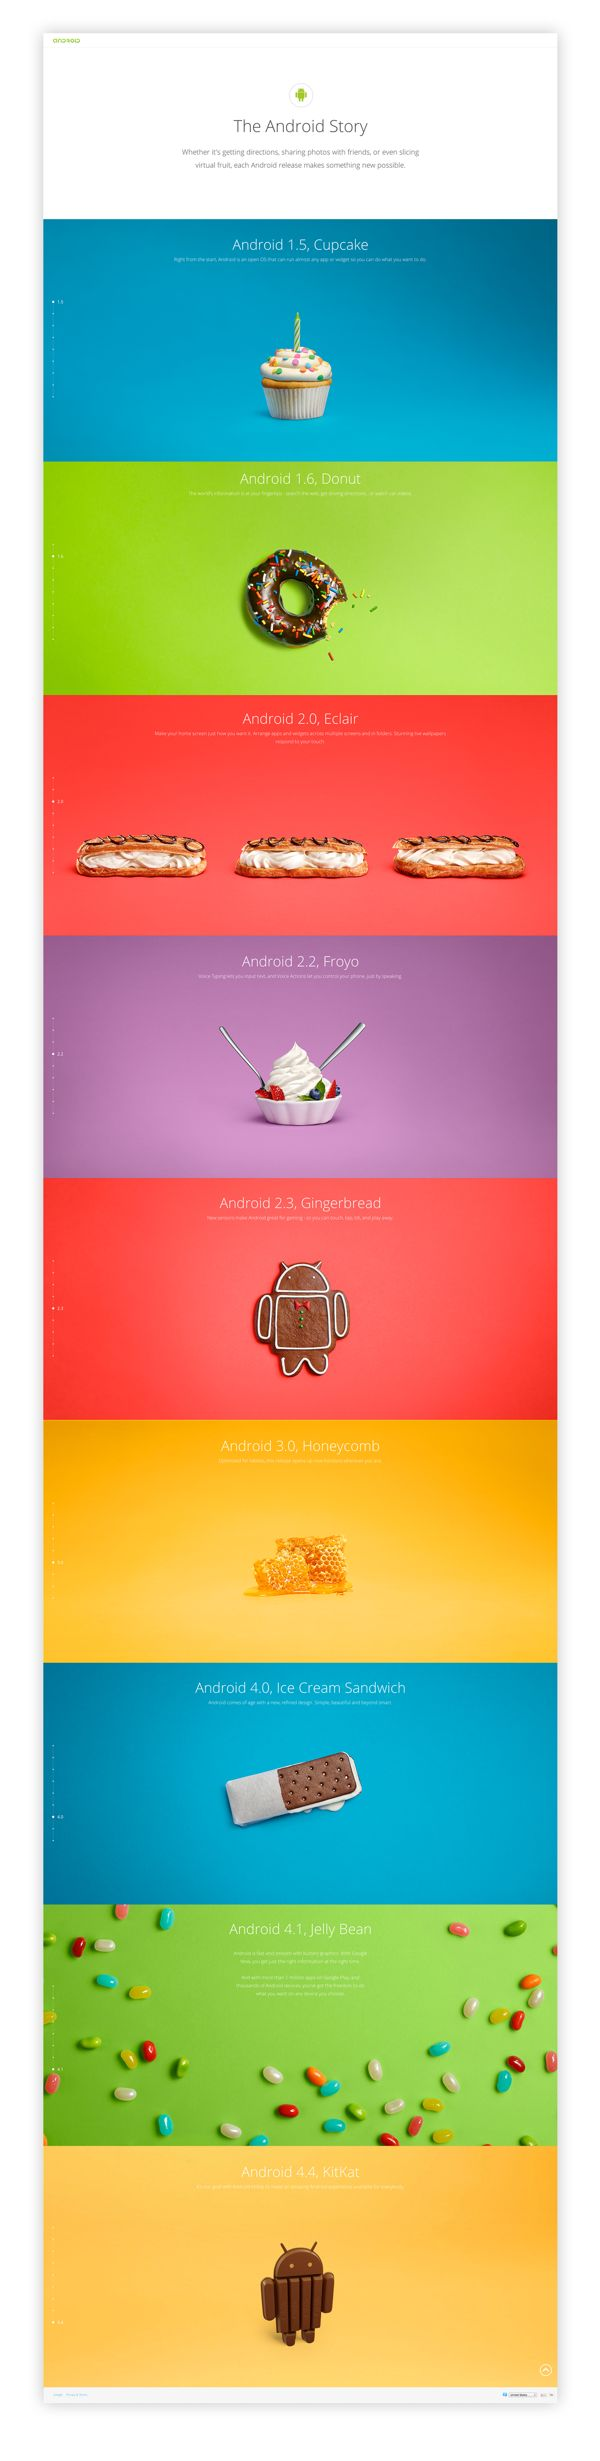 Android KitKat by Matt Delbridge